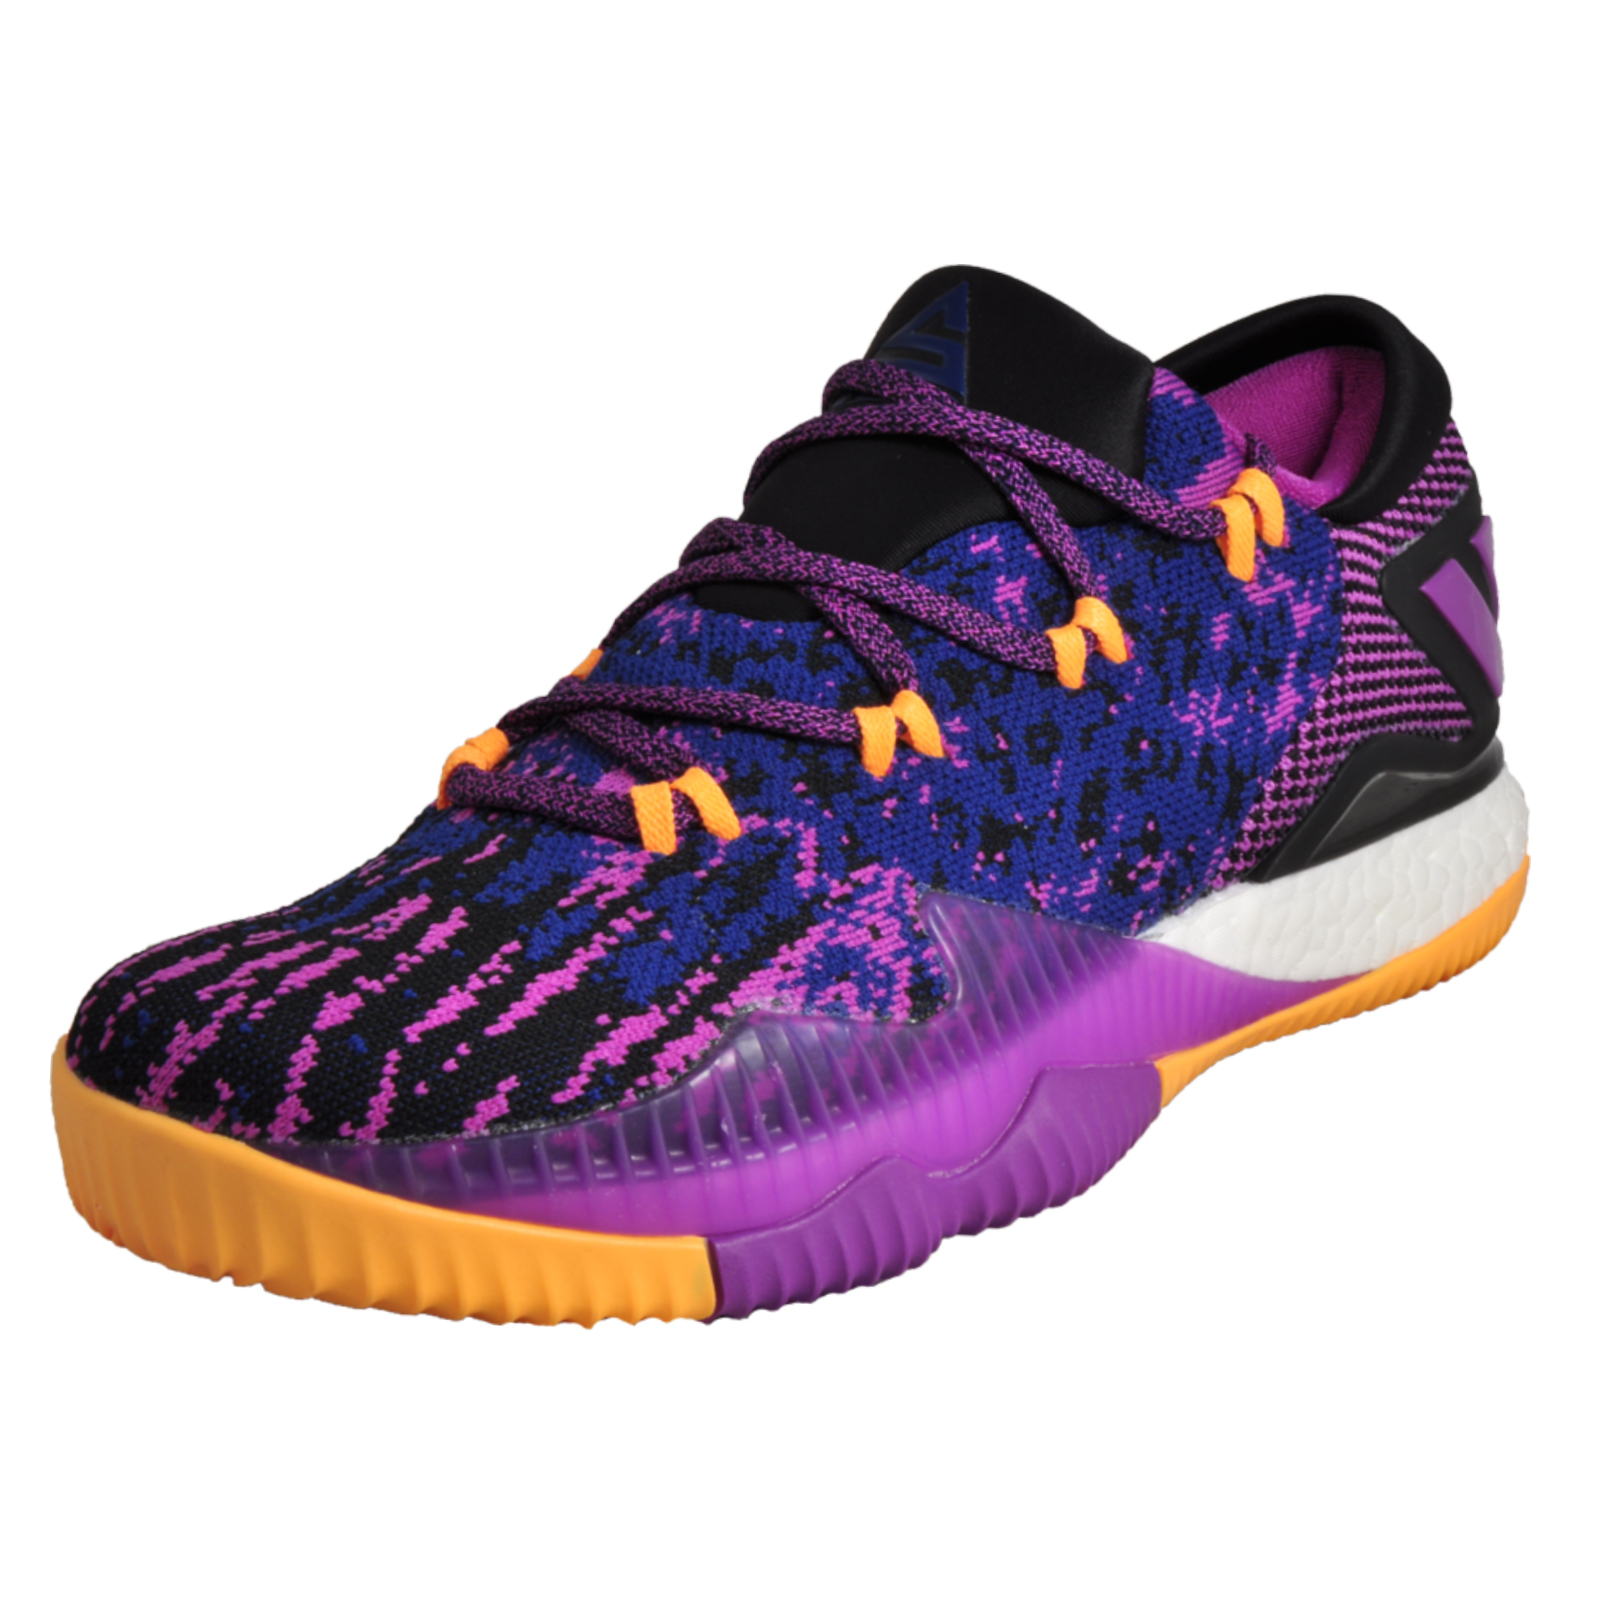 Details about Adidas Crazylight Boost Low PK Primeknit 2016 Mens Premium  Basketball Trainers e87e5529fdef